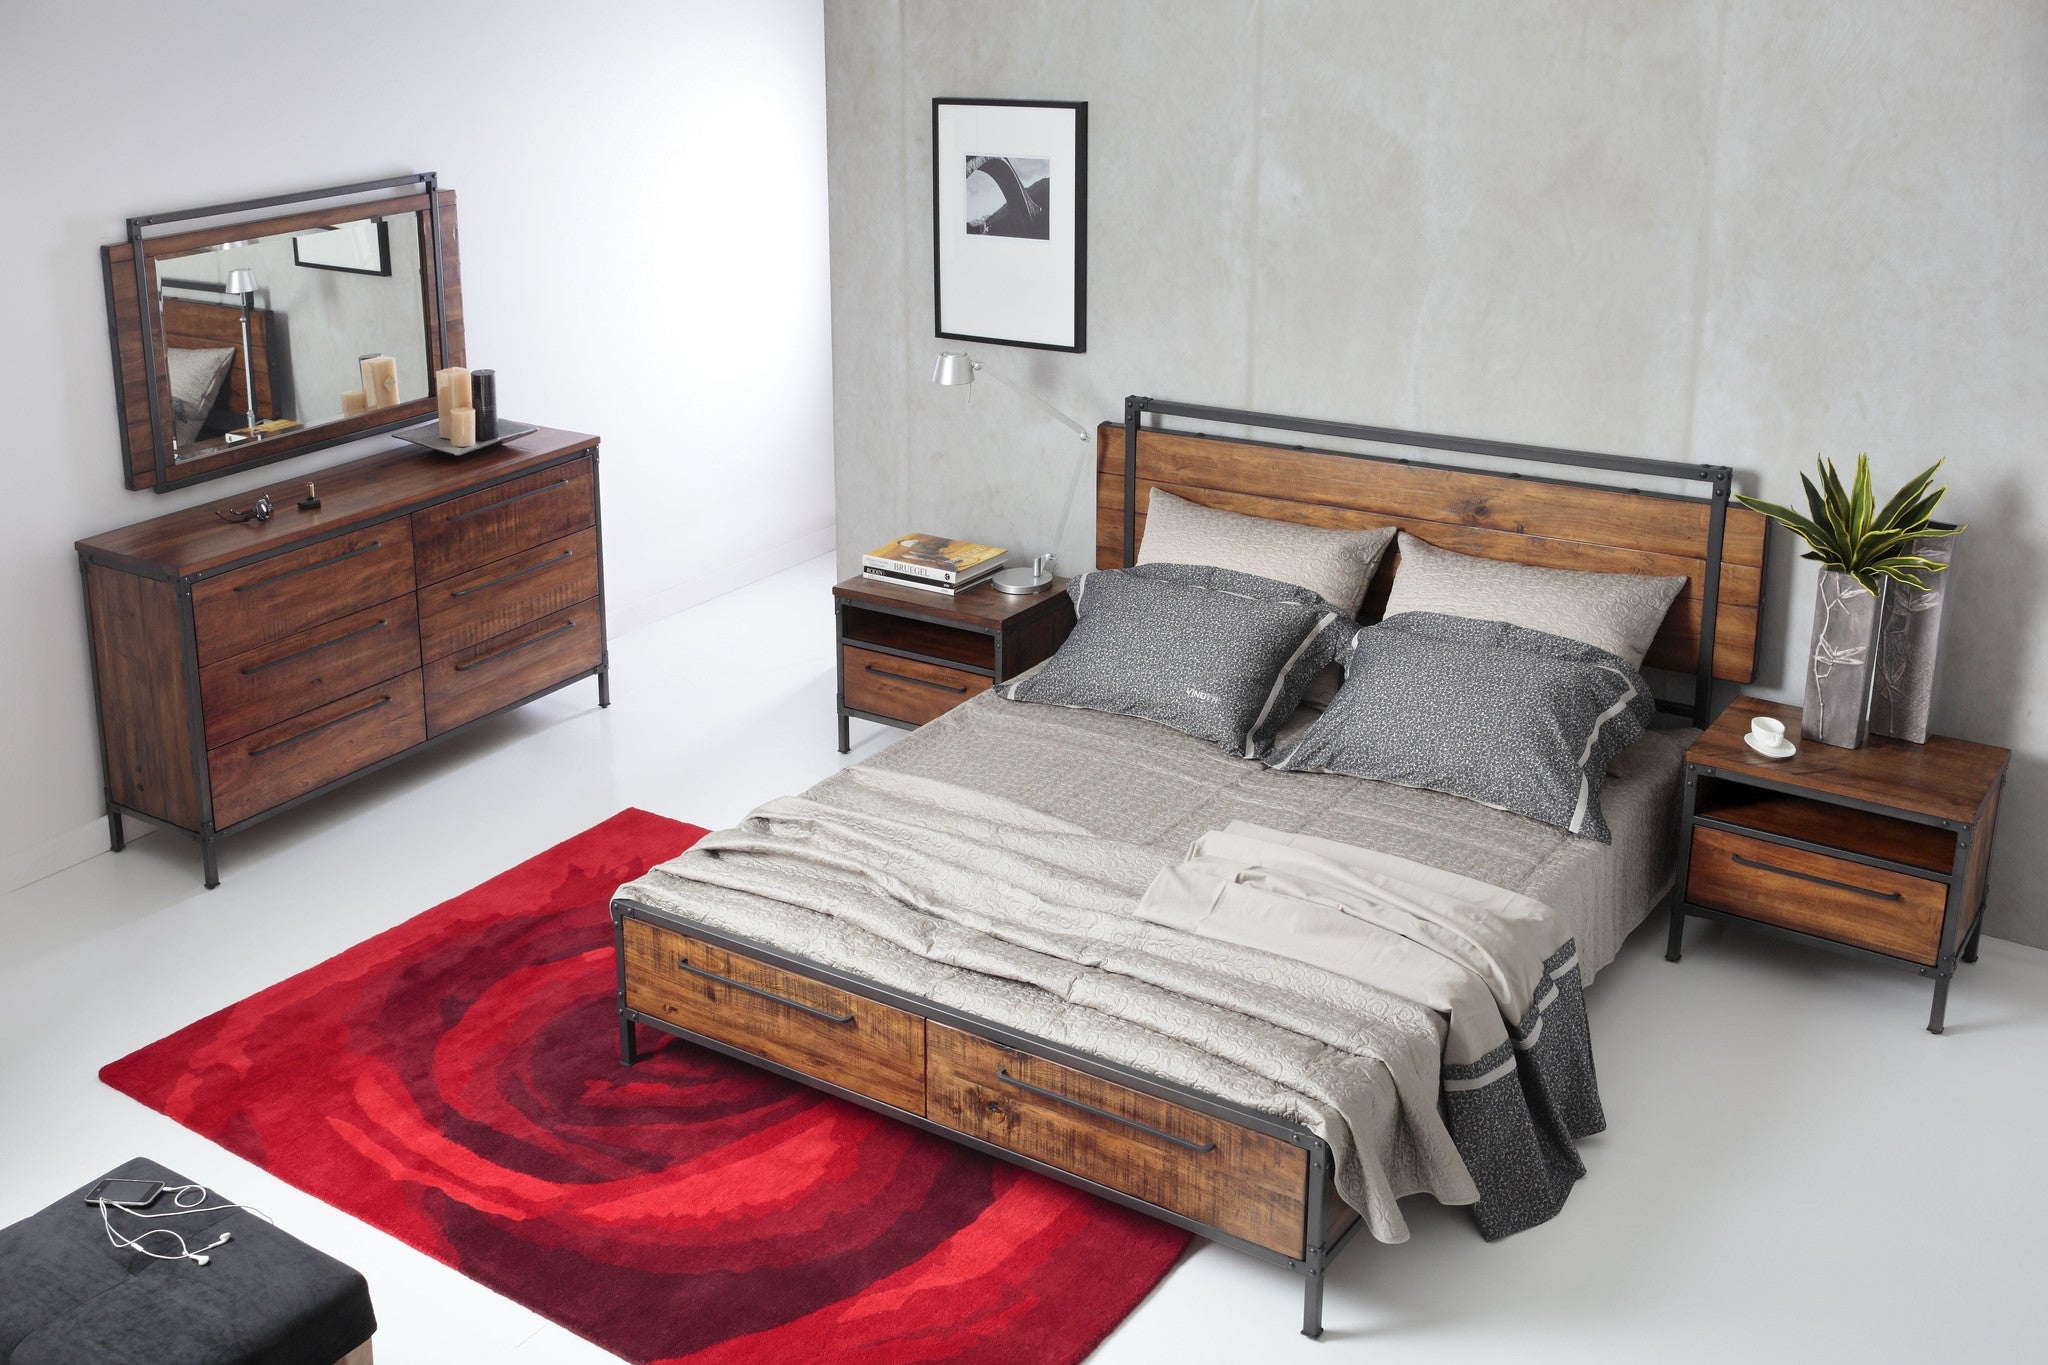 chicago queen bed with drawers picketrail singapores premium bedroom furniture - Chicago Bedroom Furniture